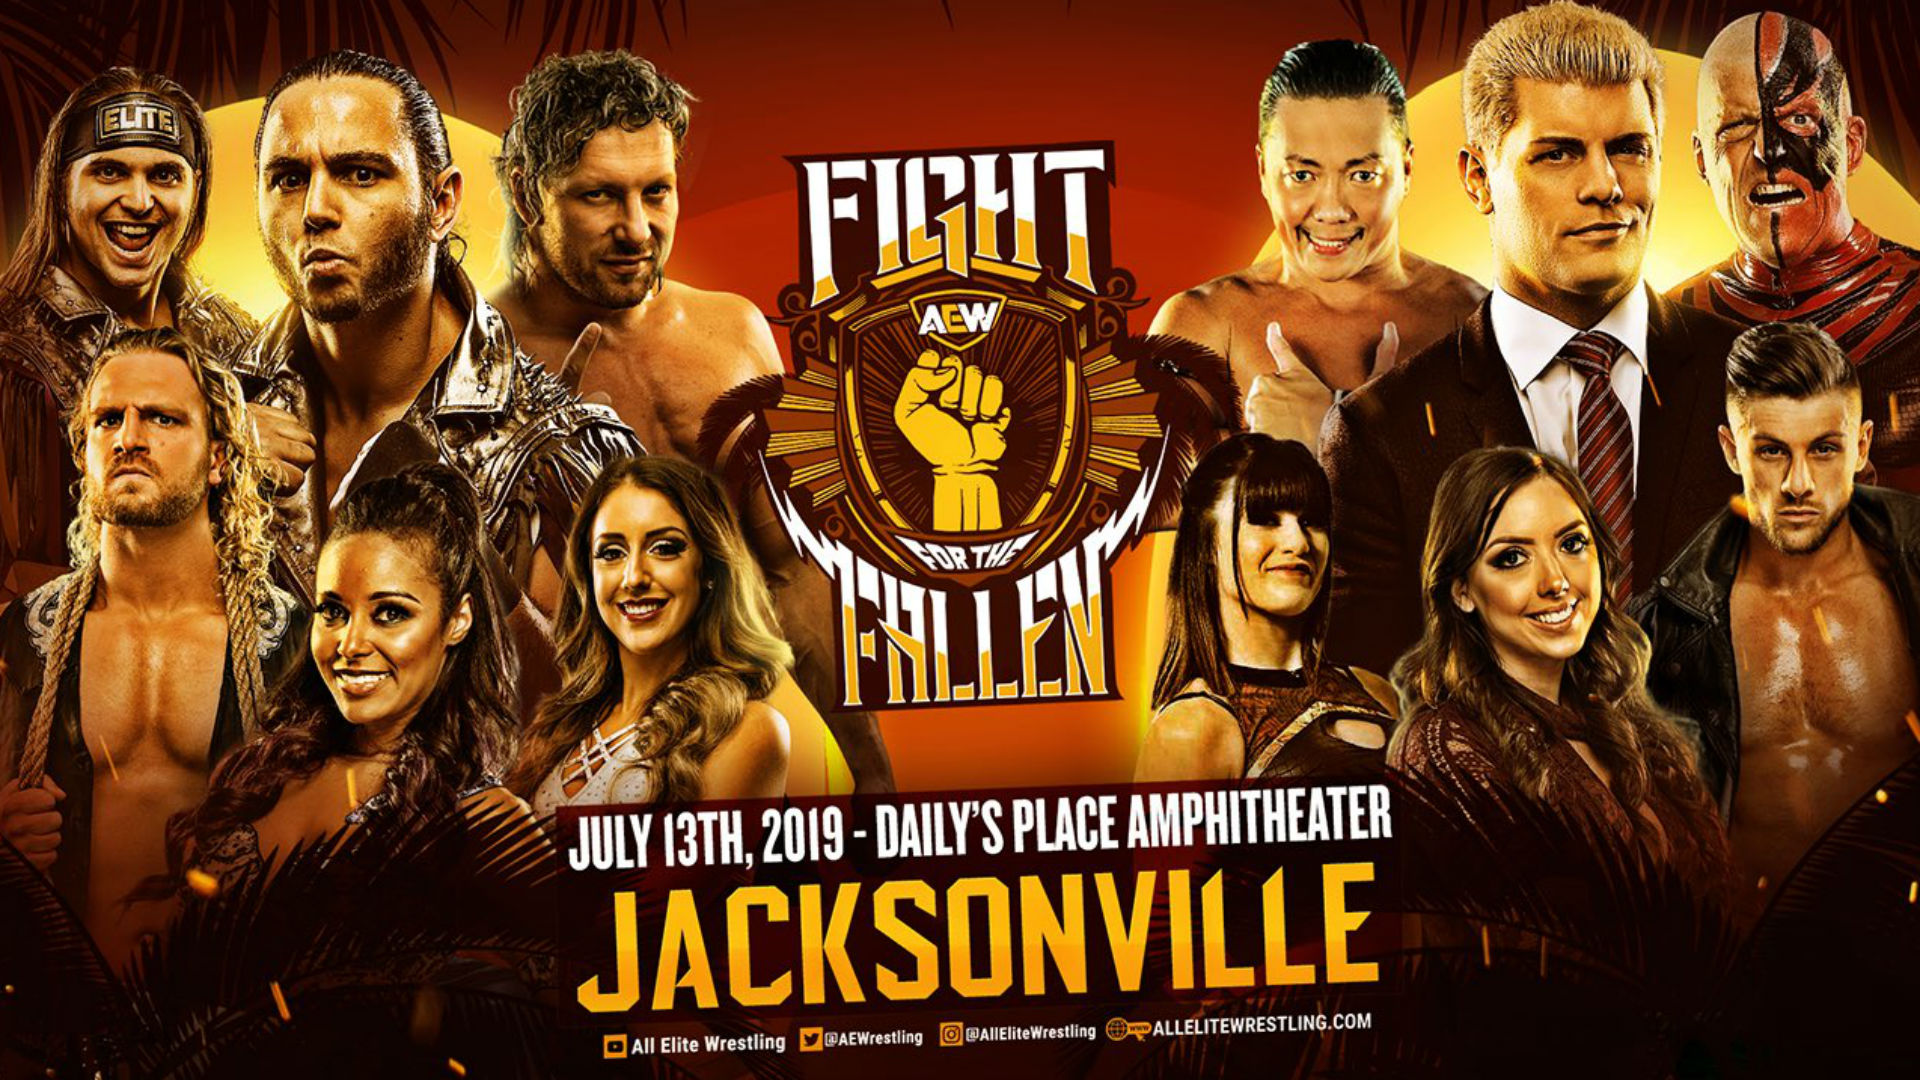 AEW Fight for the Fallen results: The Young Bucks beat The Rhodes Brothers; Kenny Omega and Cima shine